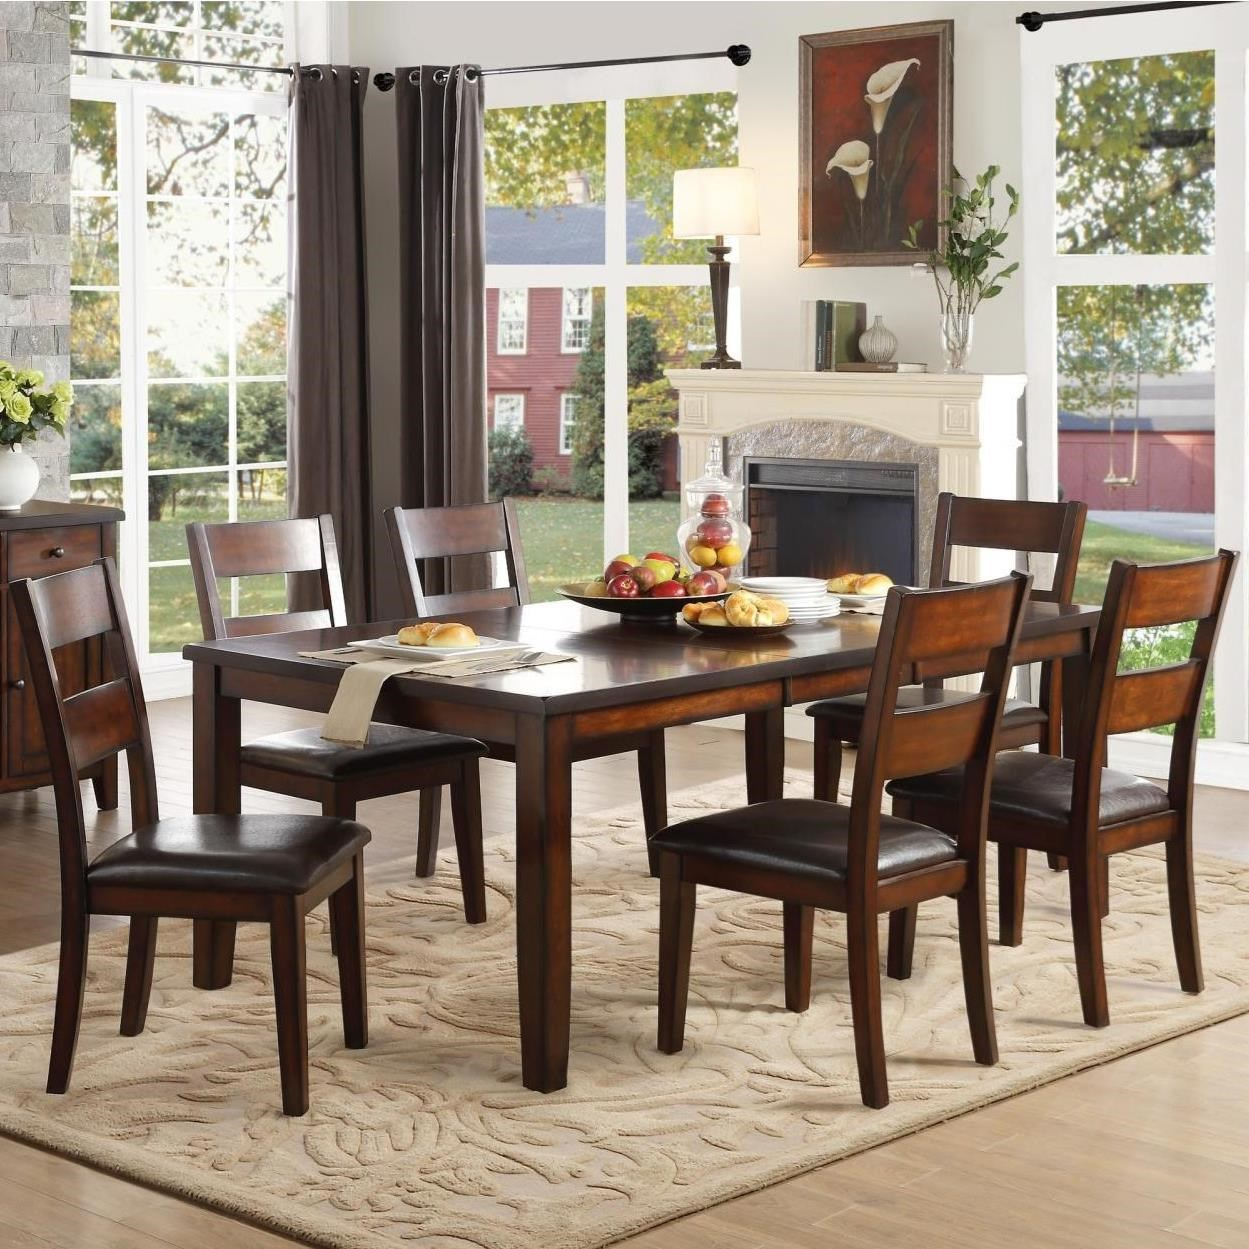 Homelegance Mantello Transitional Dining Table With Table